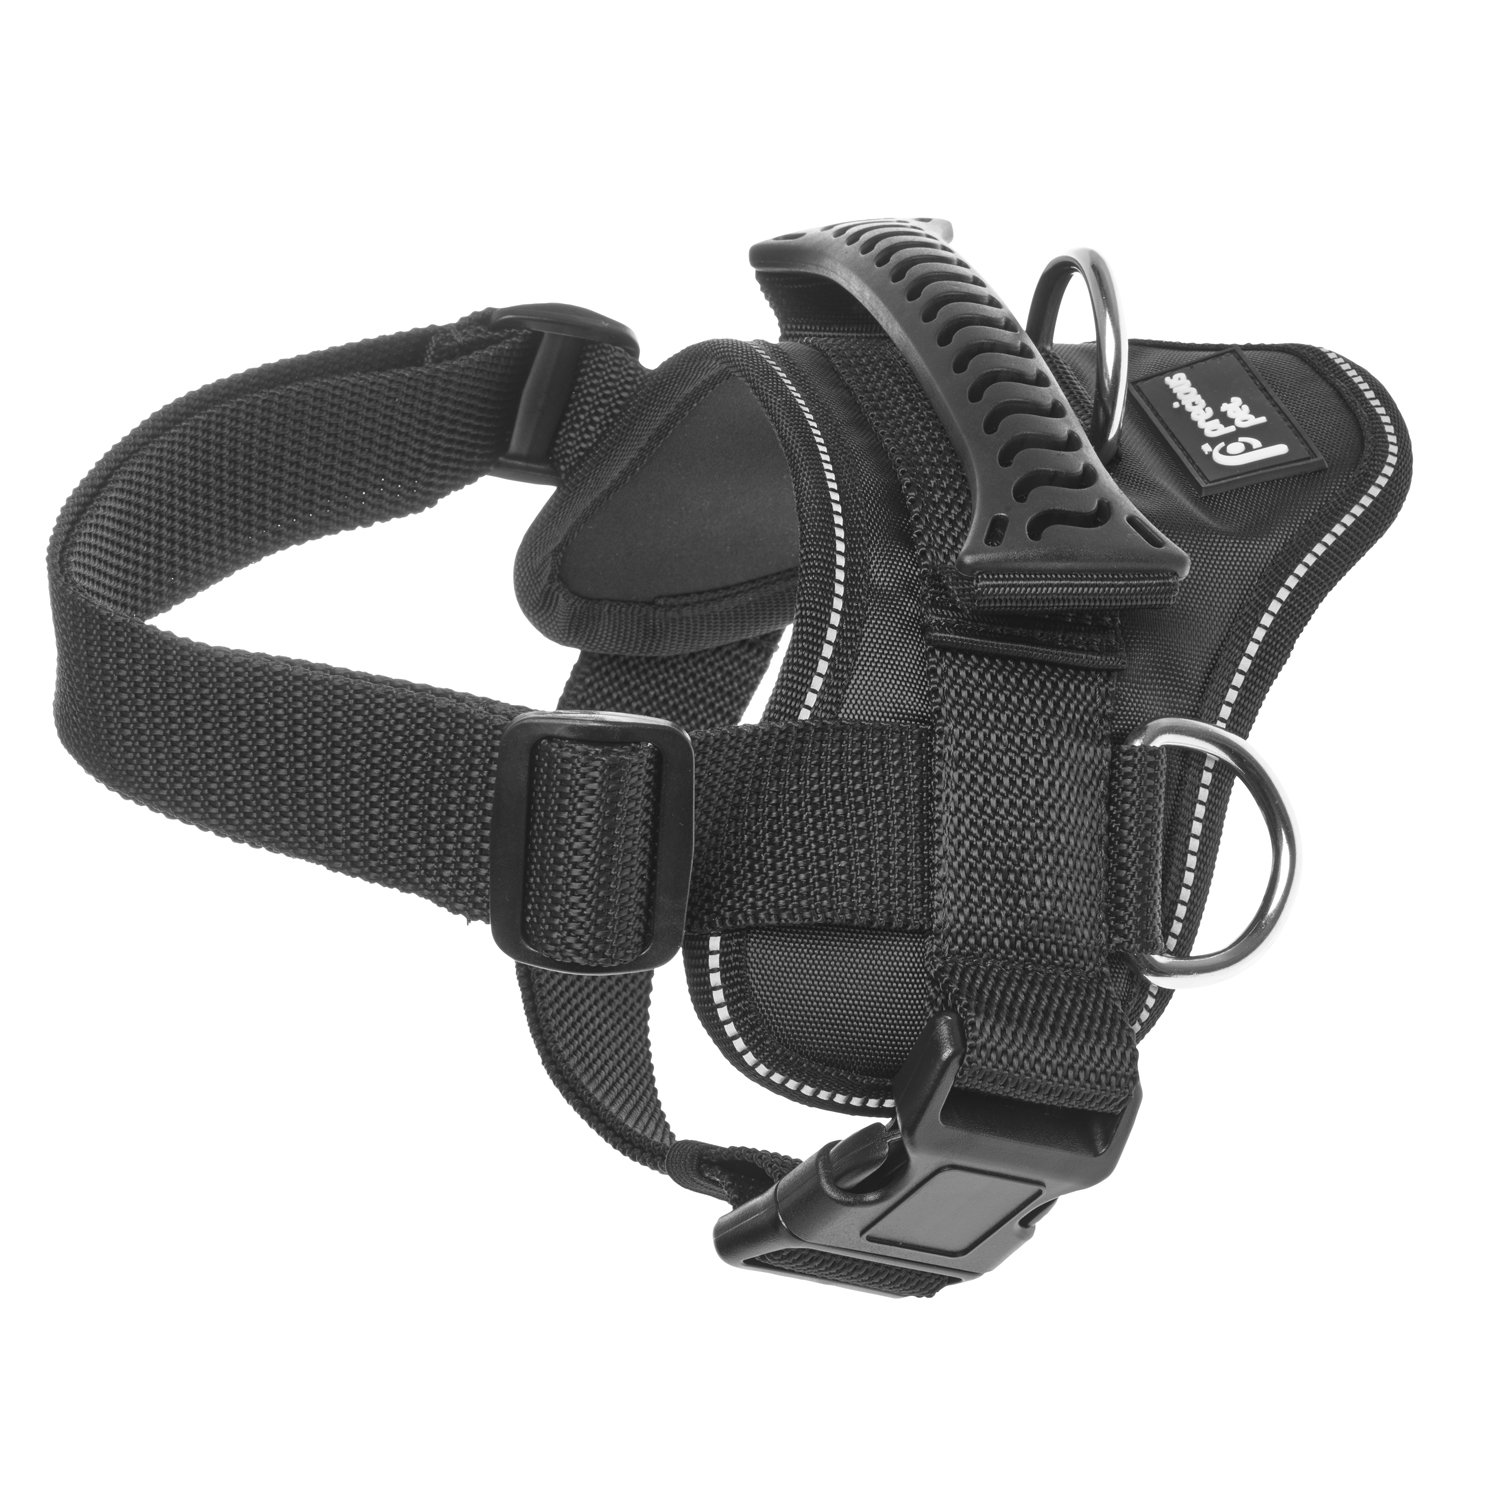 Precious Pet Heavy Duty Dog Harness with Handle, No Pull No Choke, Padded, Waterproof, with Adjustable Straps & Quick Release Buckle, Black (Medium)